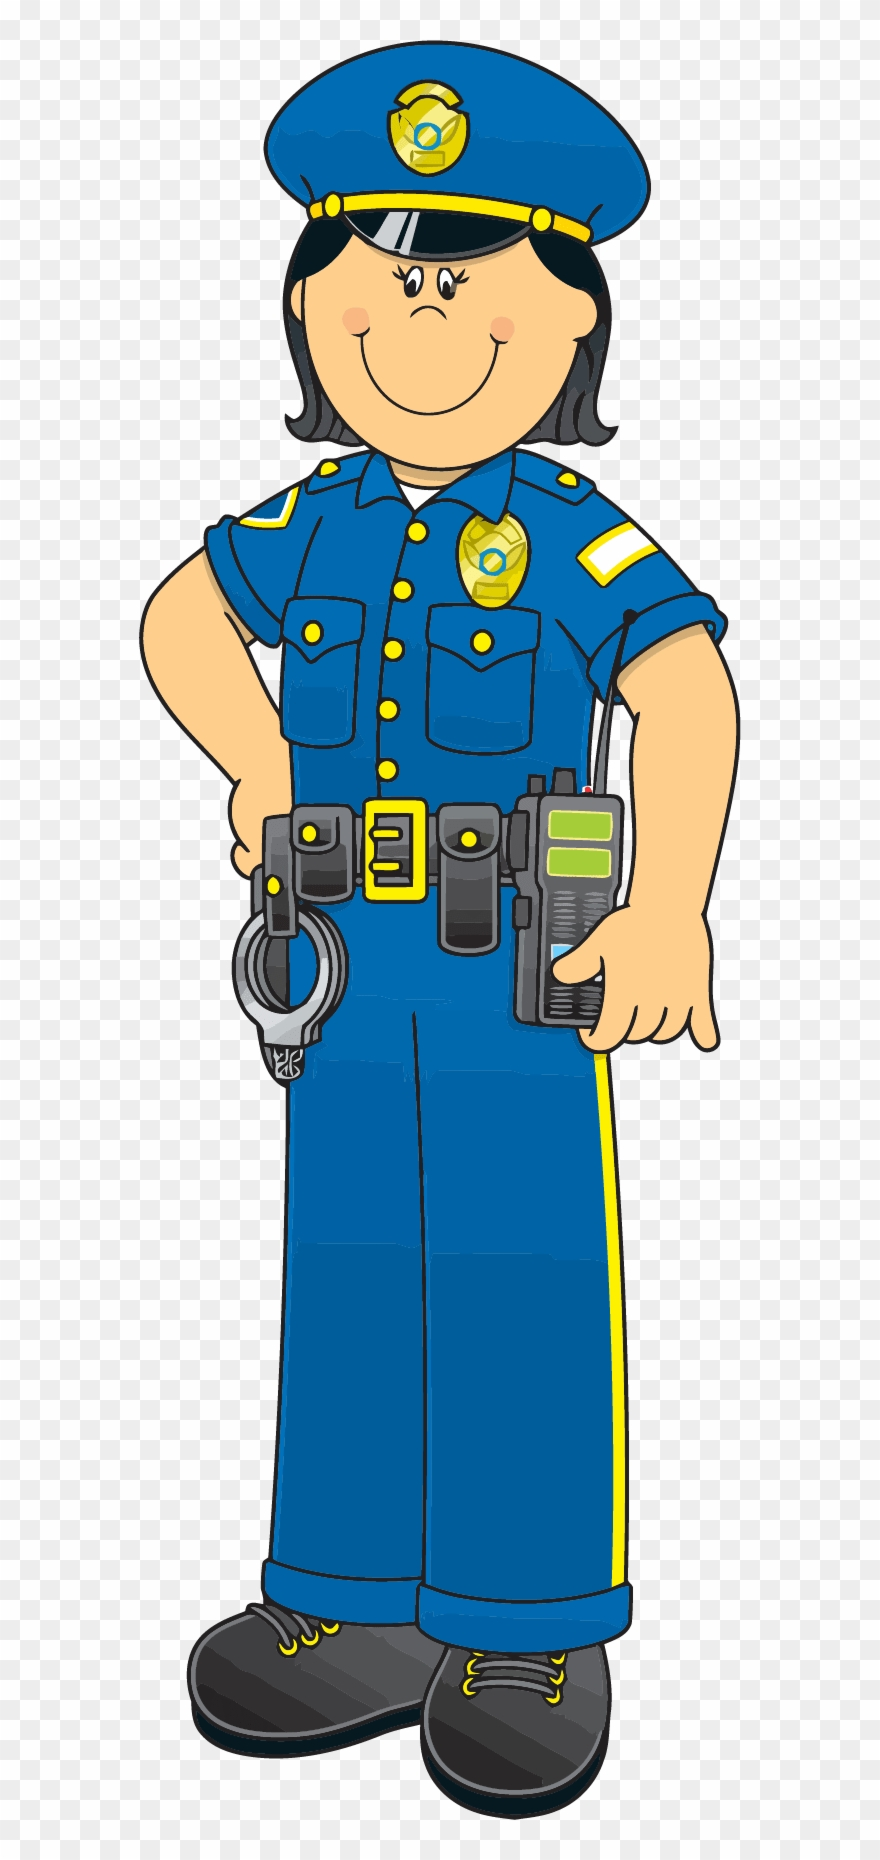 Female police png download. Cop clipart peace officer